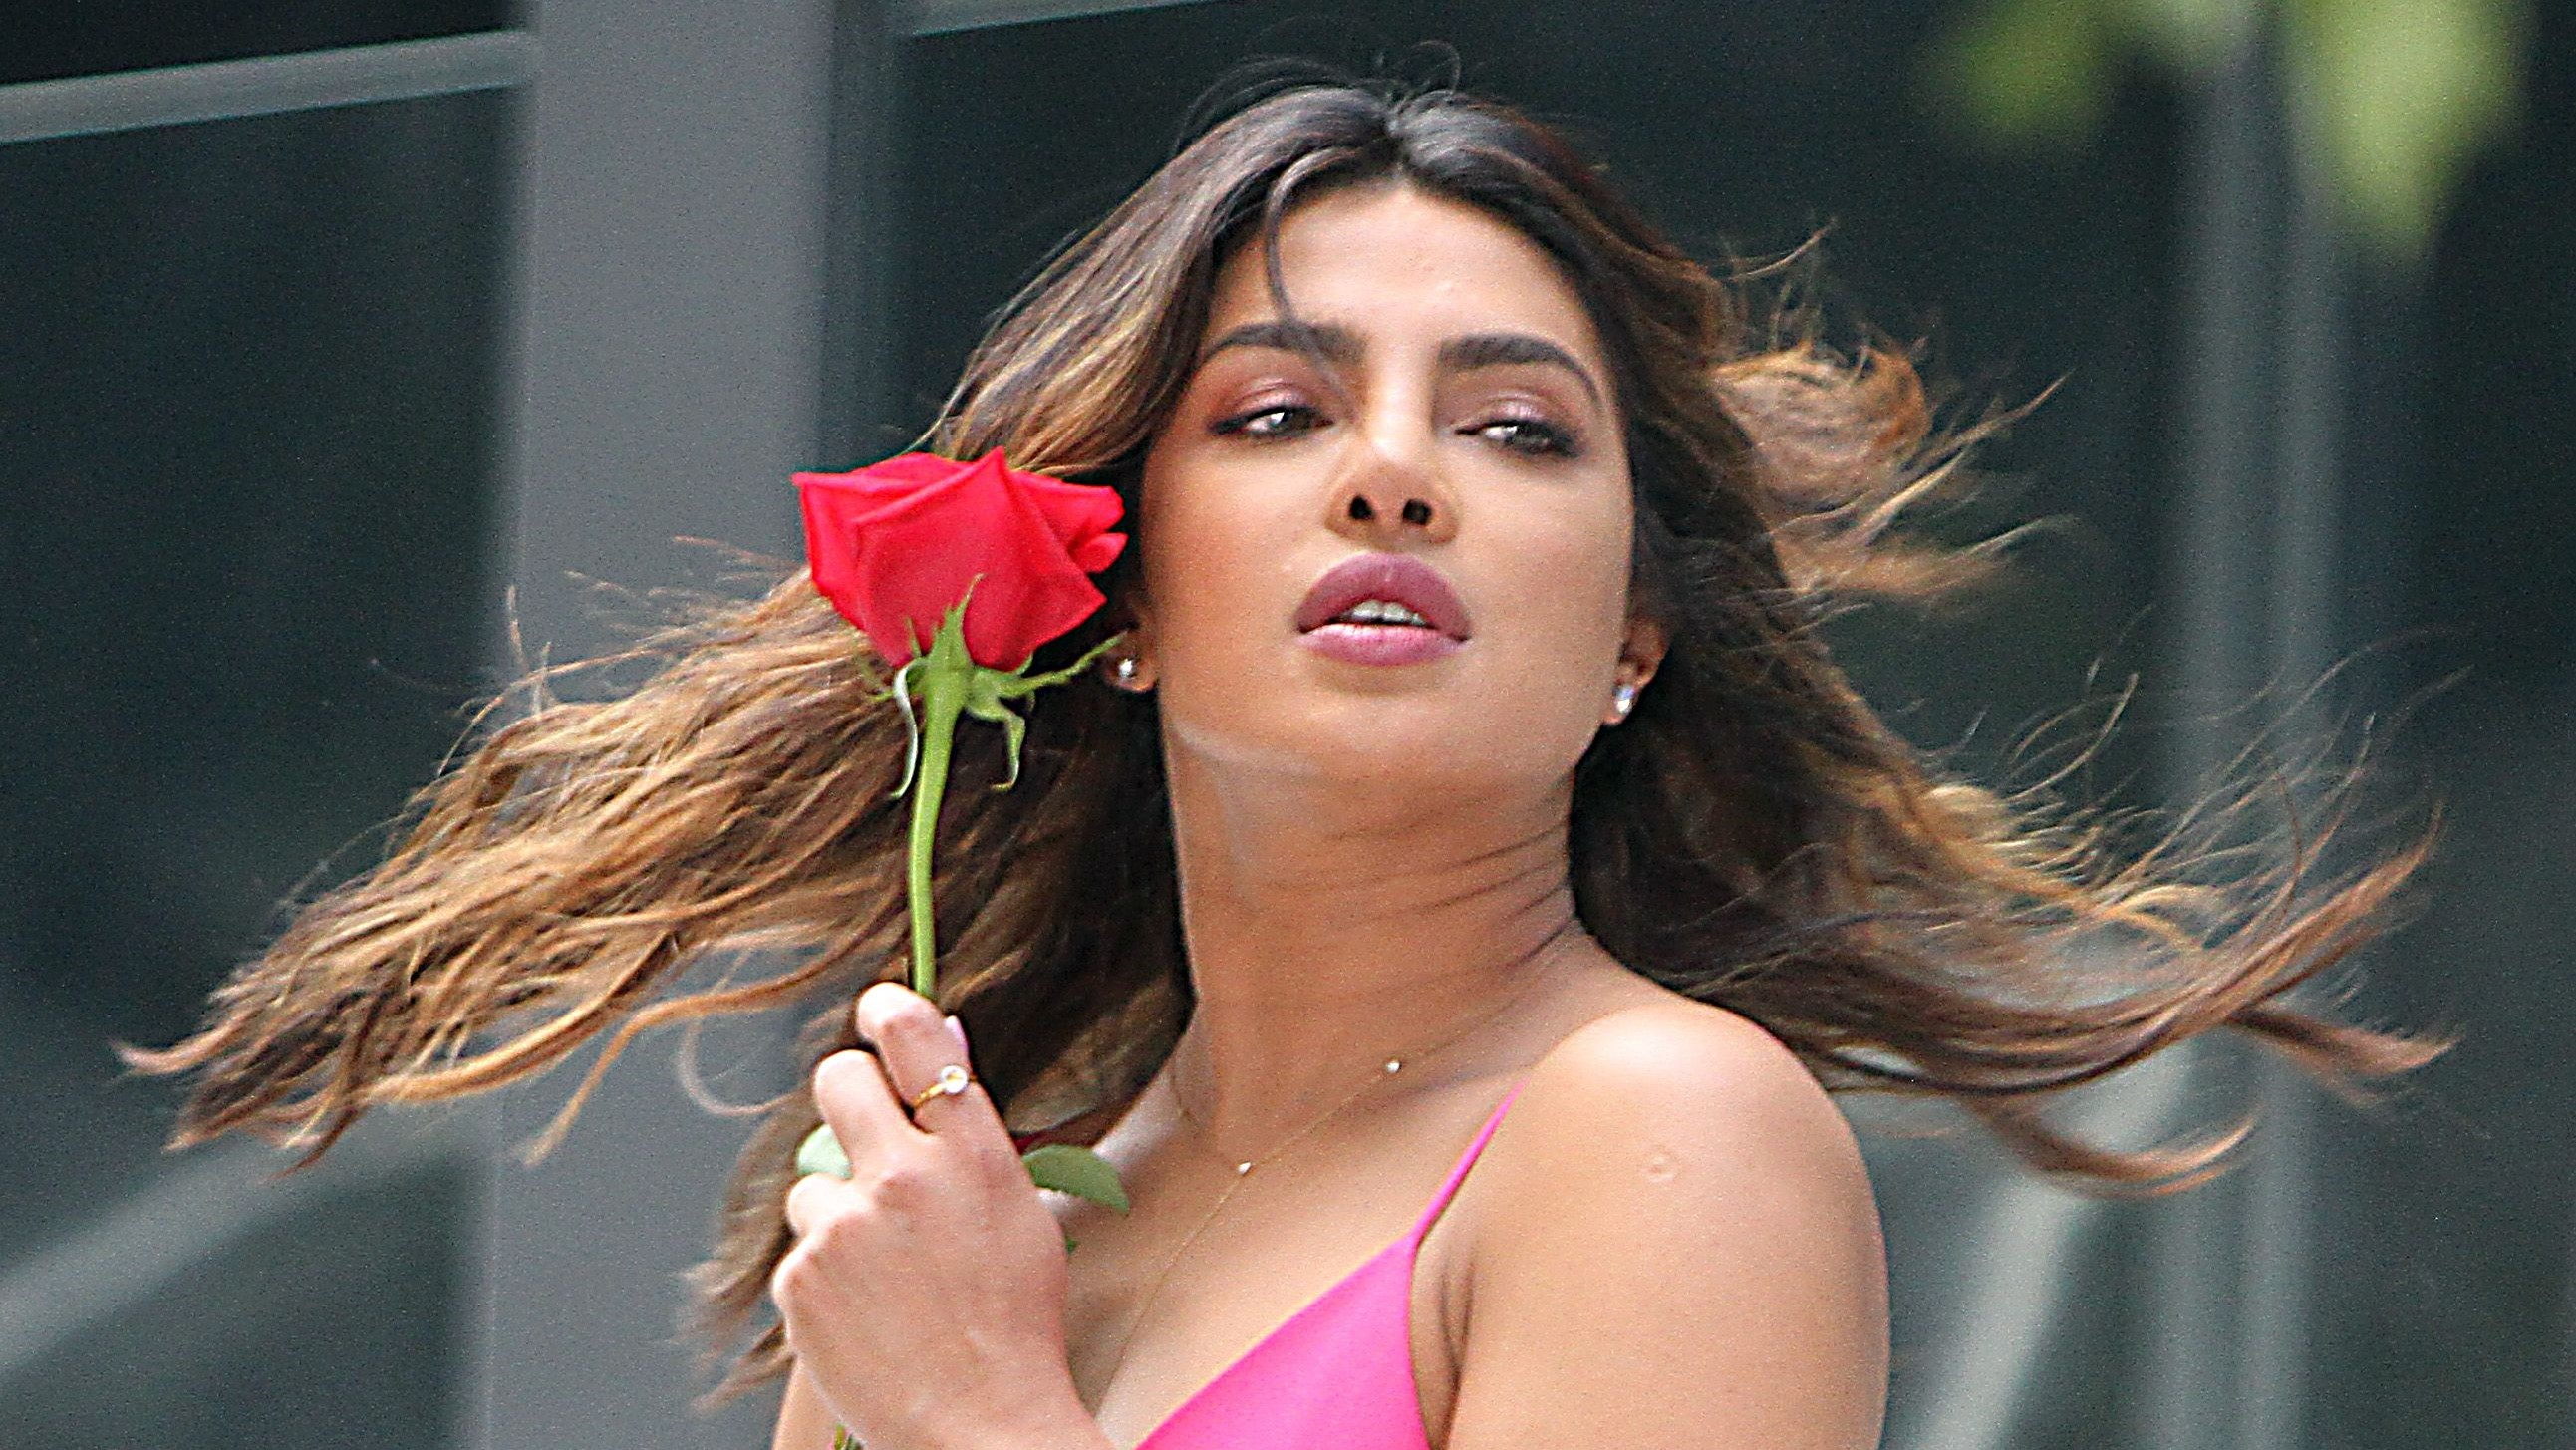 Priyanka Chopra Returns to India With 'The Sky Is Pink'